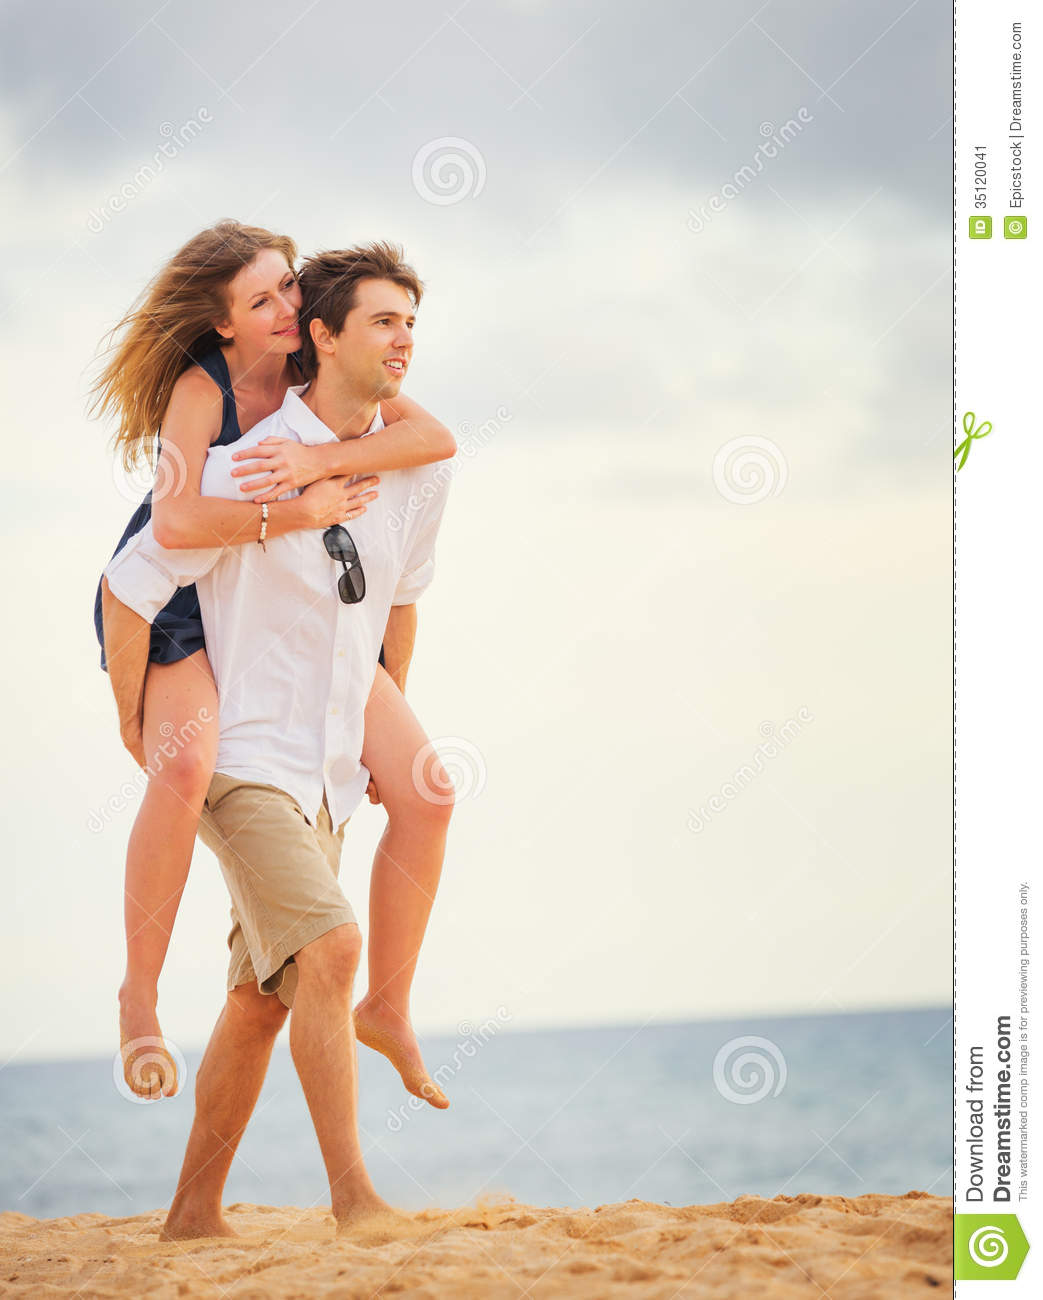 Romantic Happy Couple On The Beach At Sunset Stock Image